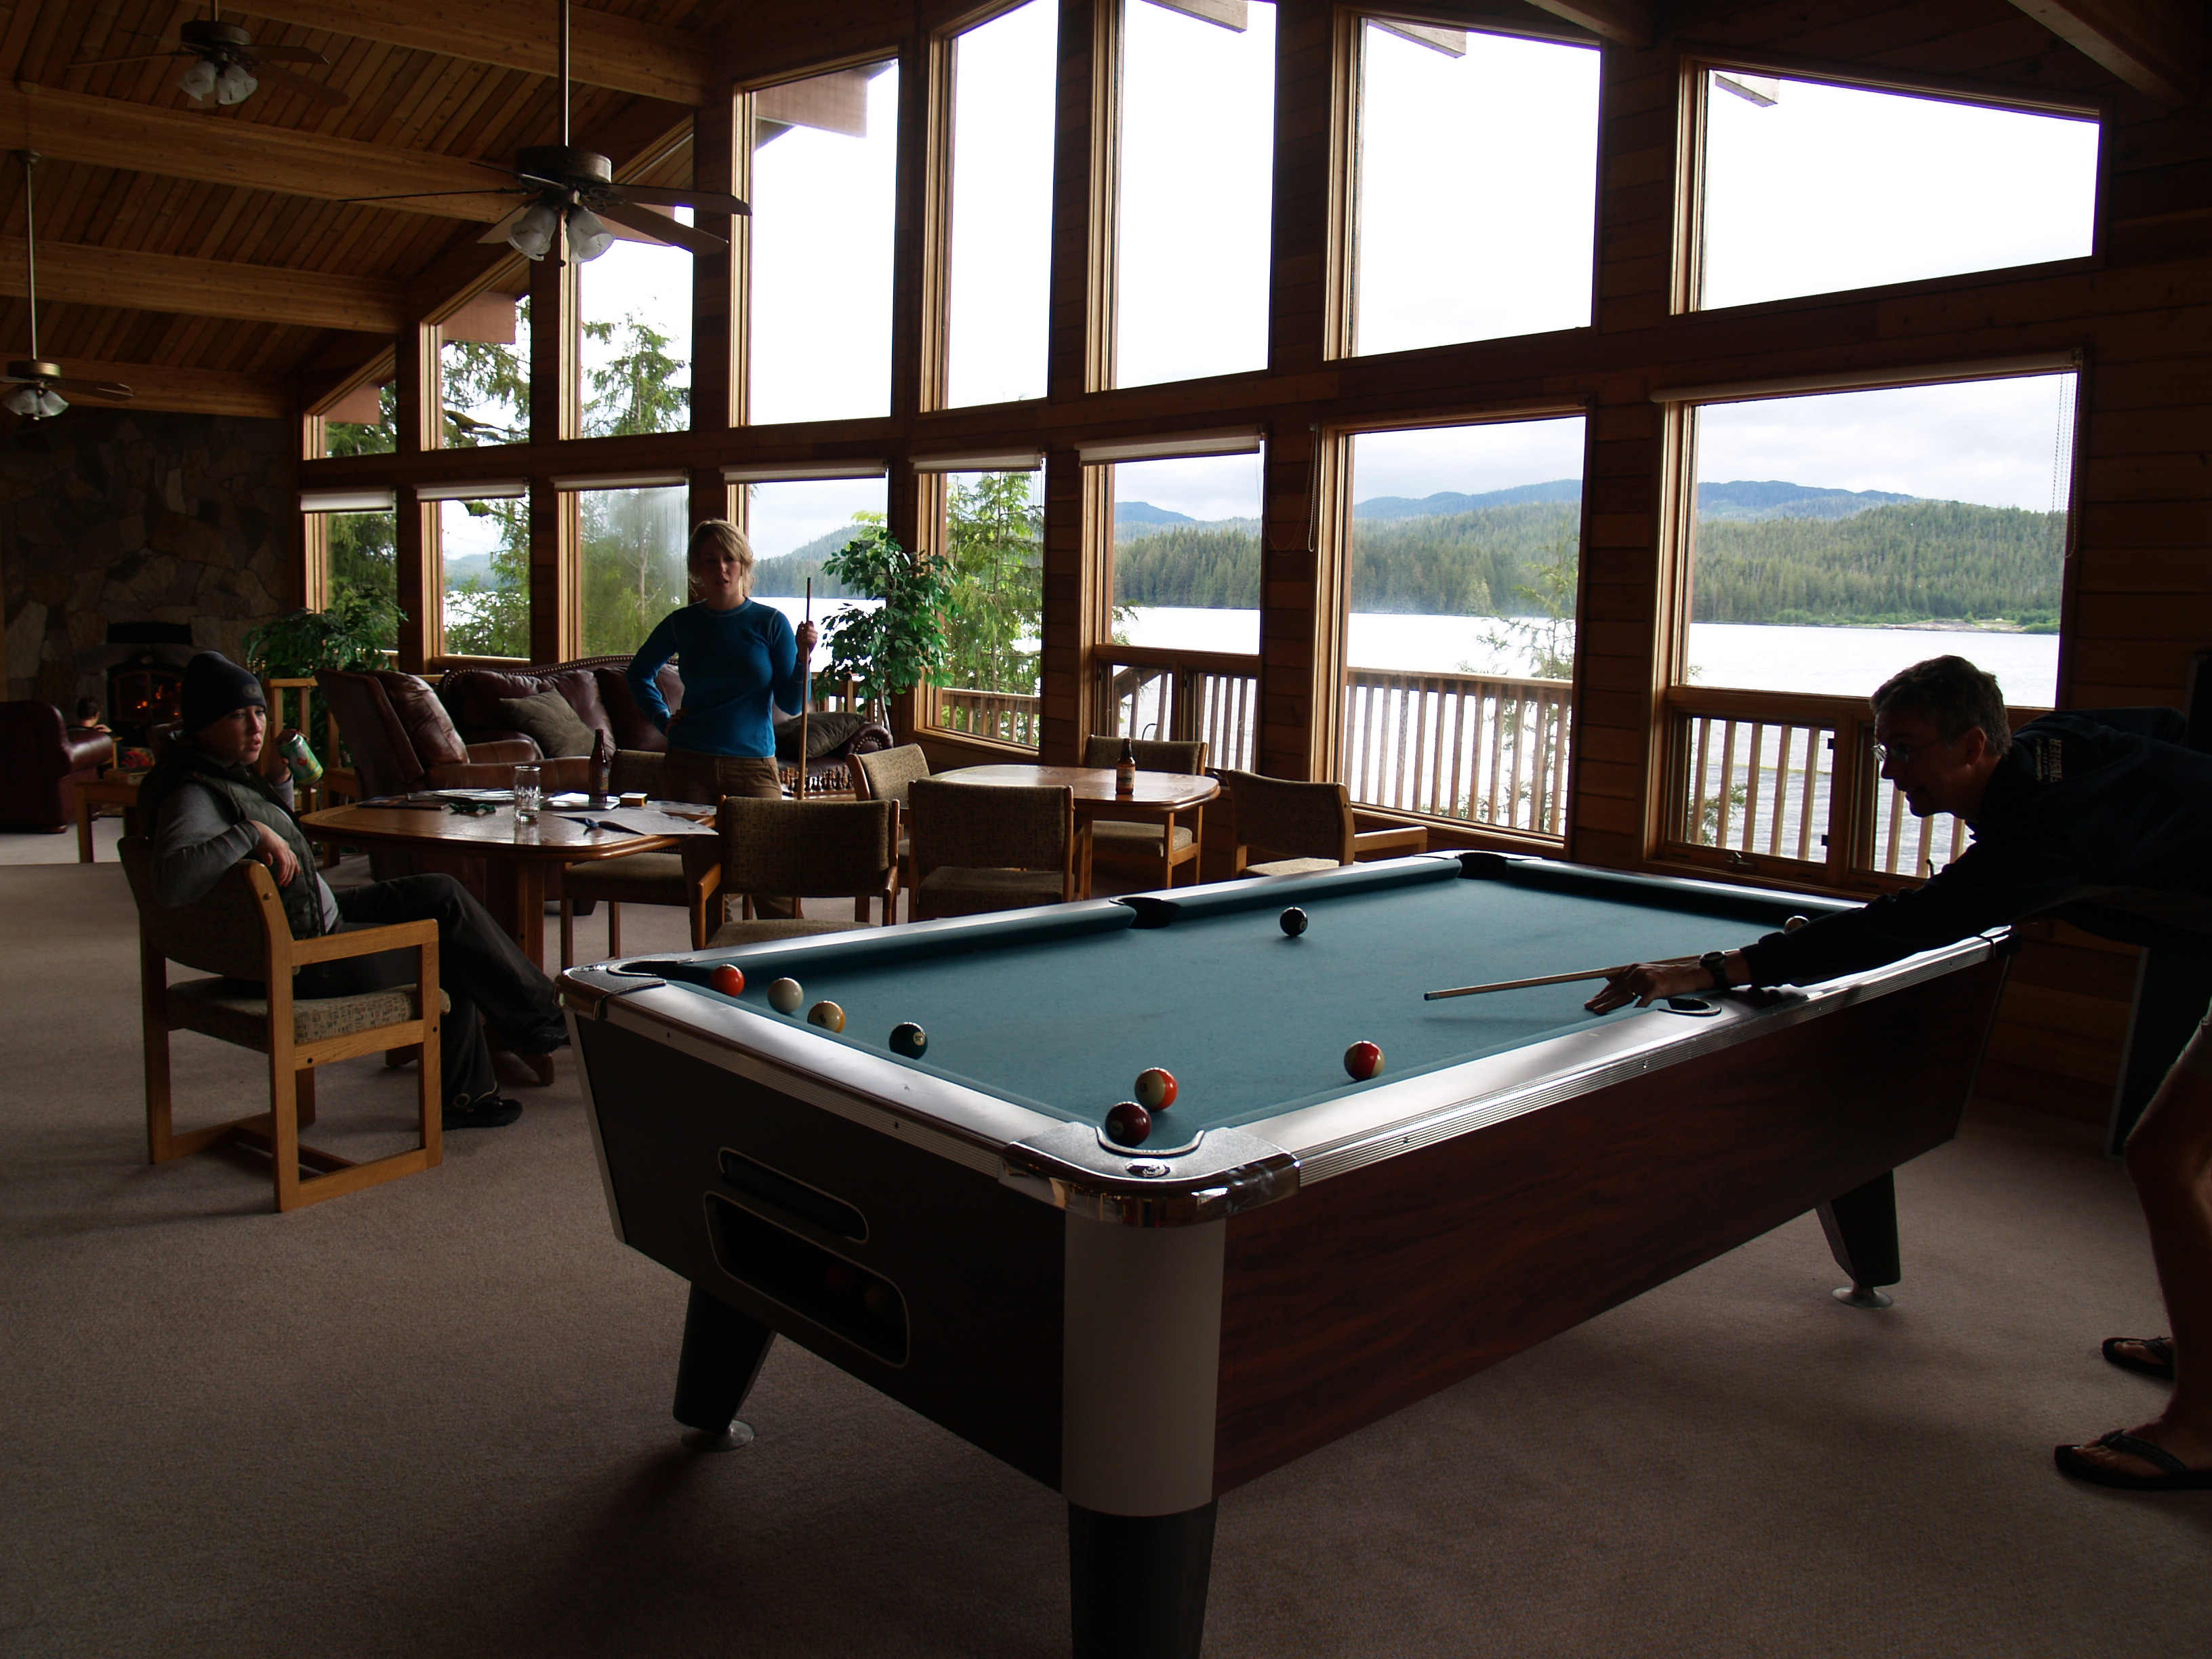 Pool table in bay window at The Lodge at Whale Pass